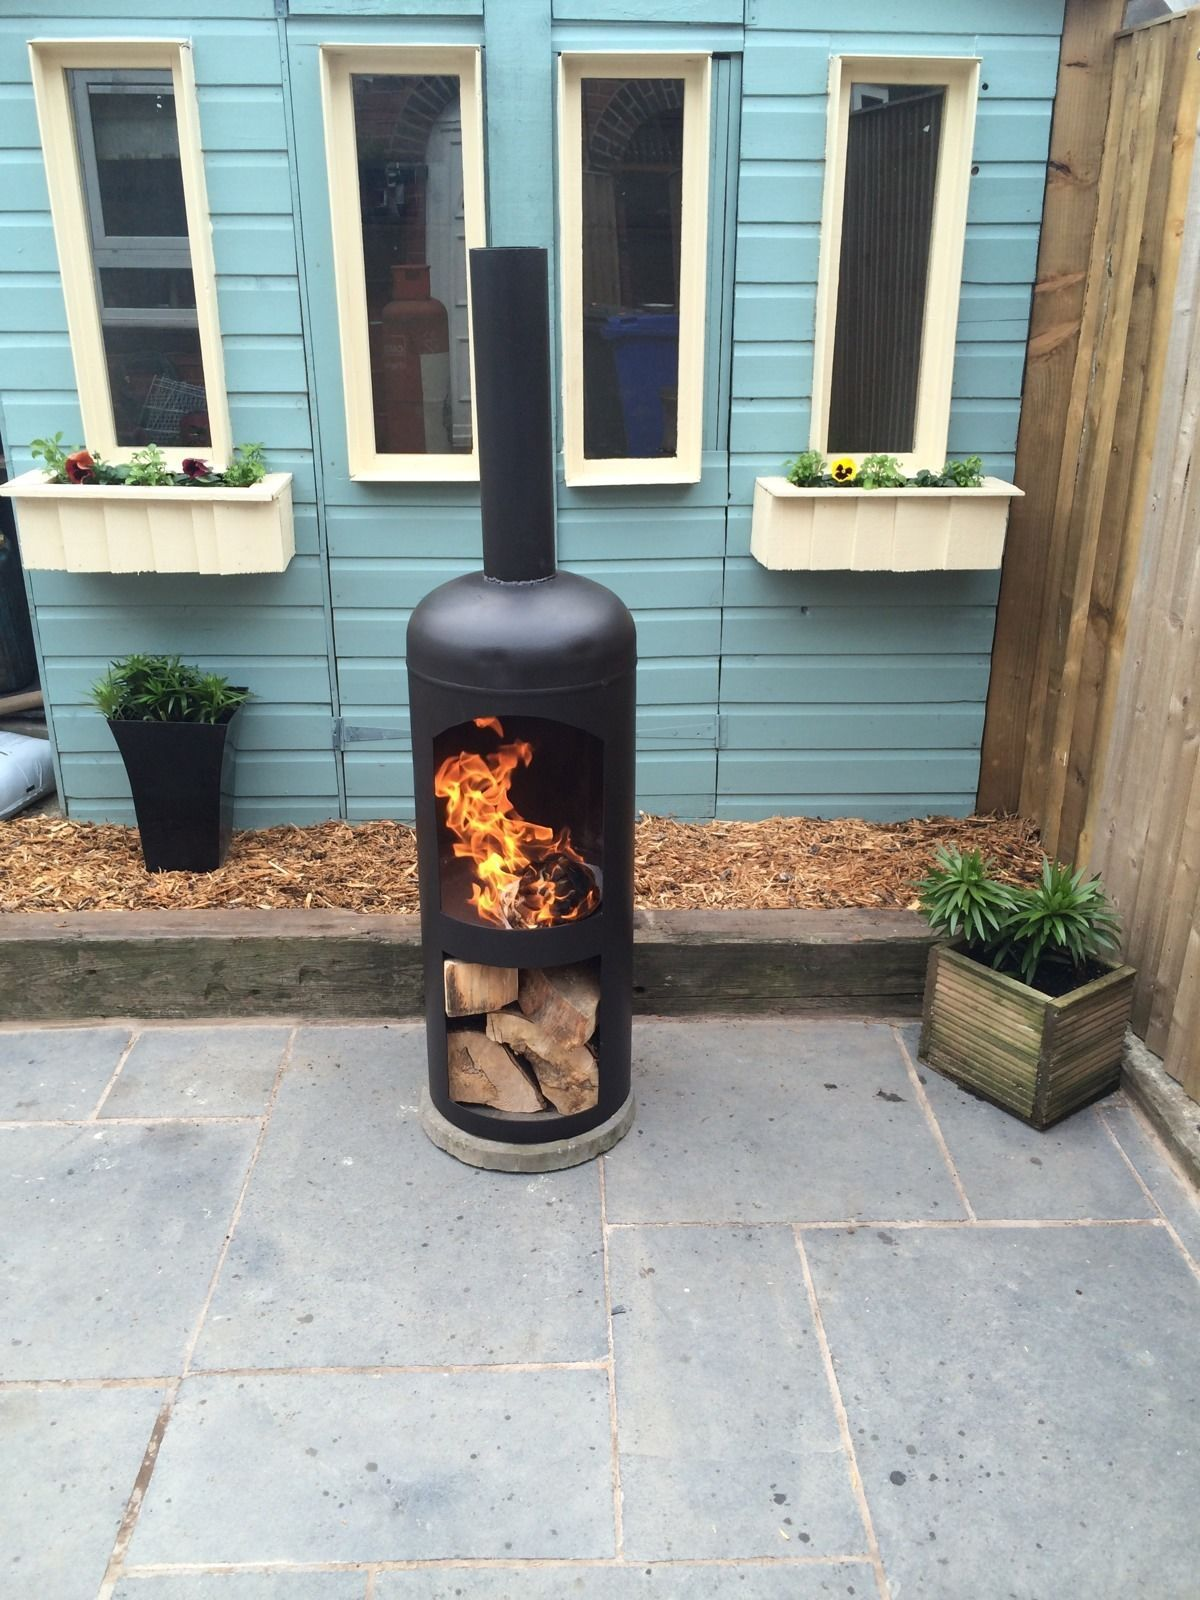 Feuerstelle Garten Ebay Chimenea Patio Garden Woodburner Log Woodburning Stove Gas Bottle